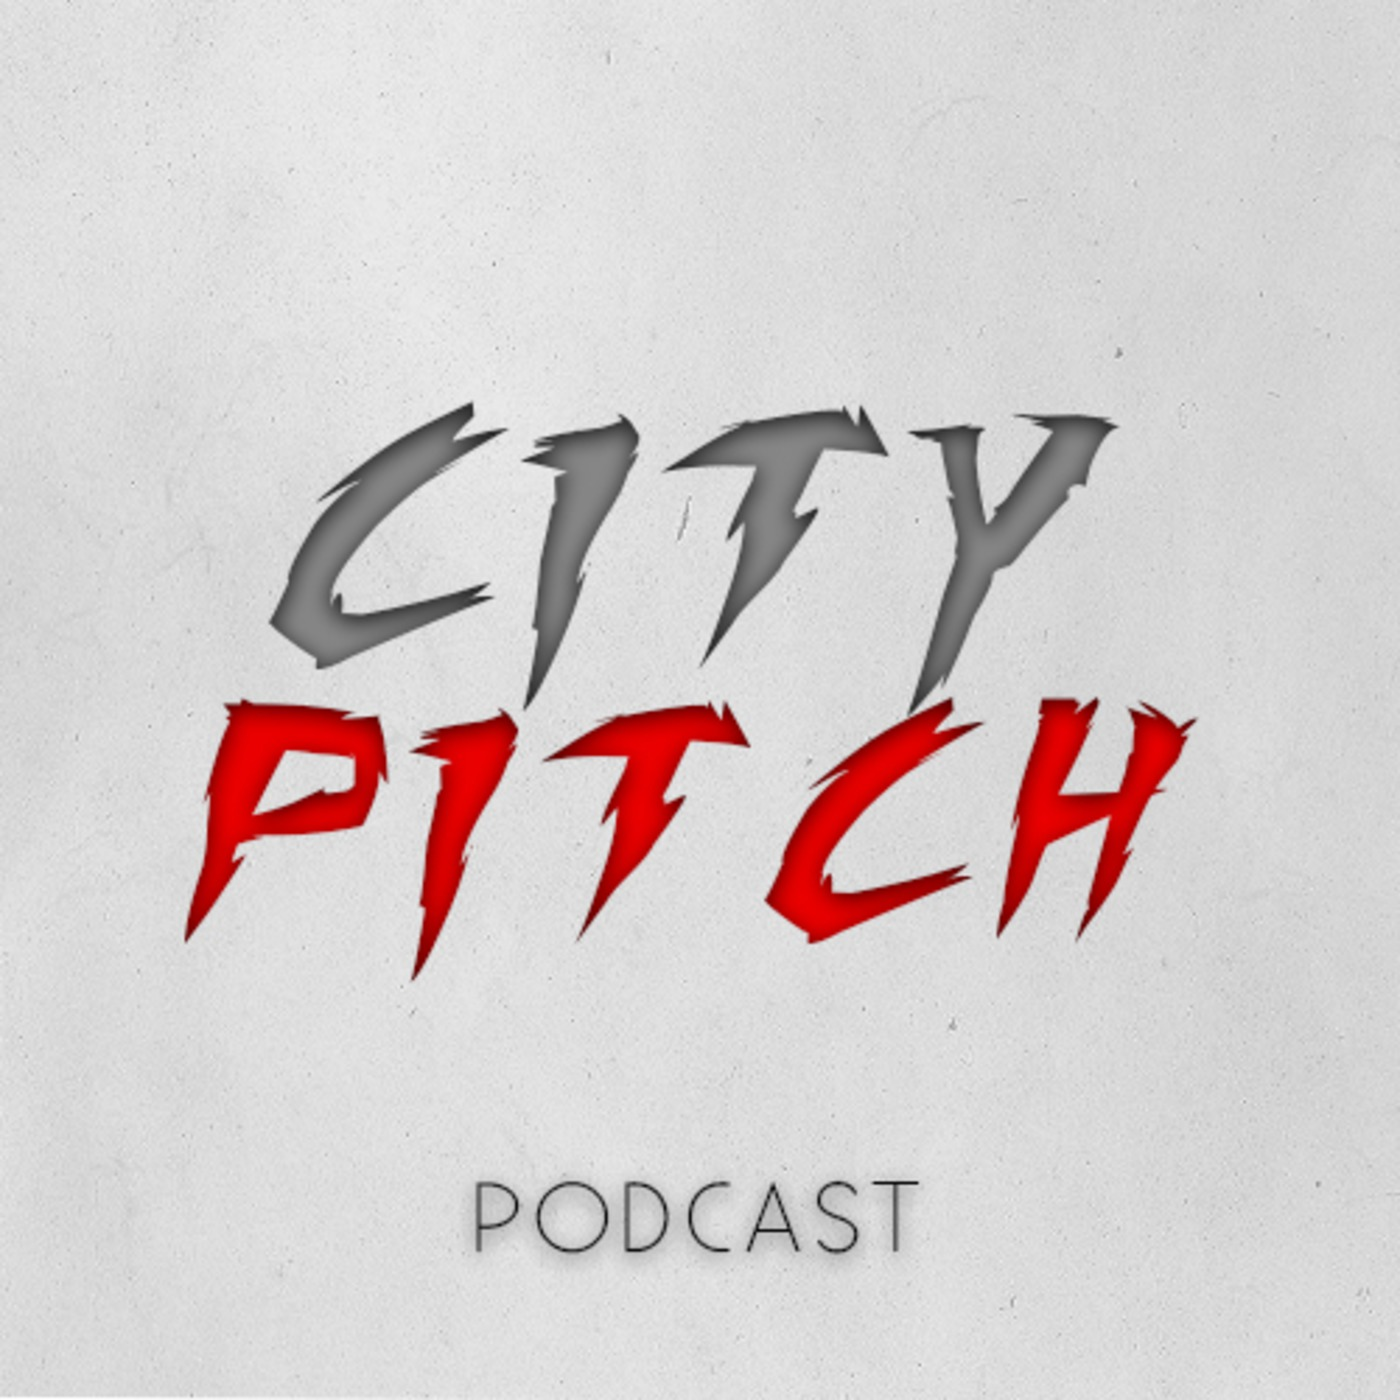 City Pitch Podcast